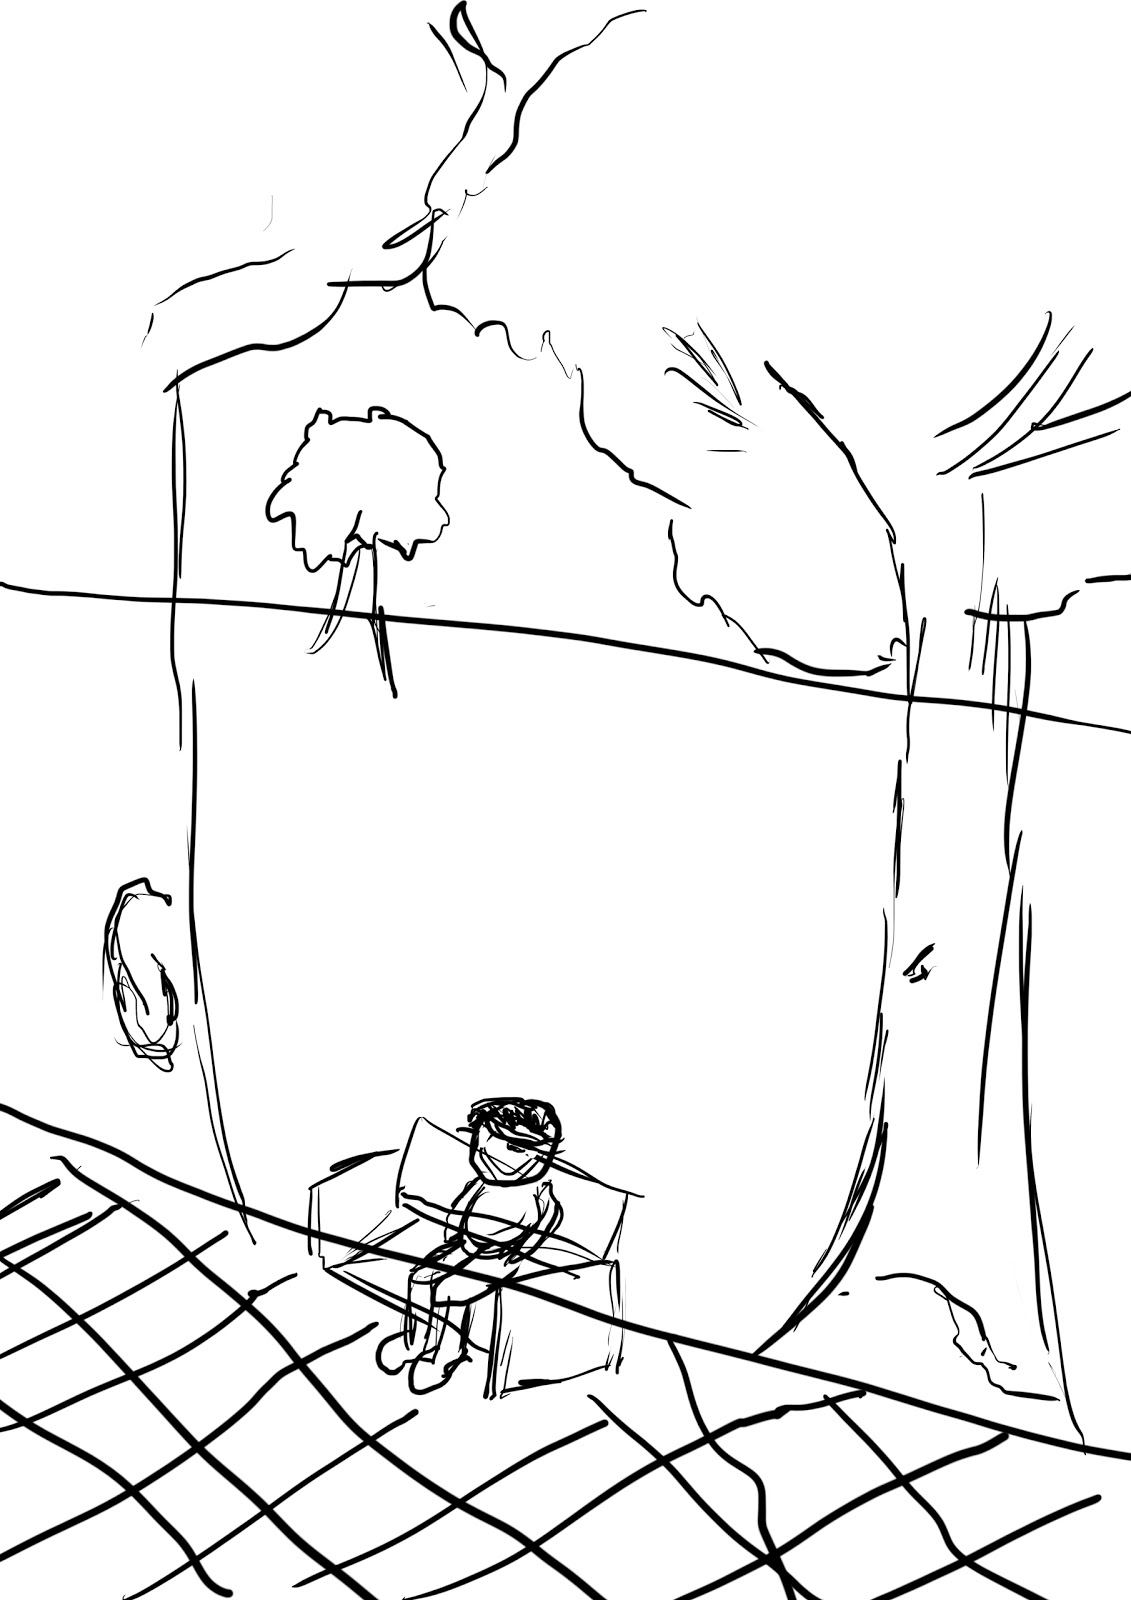 1131x1600 Graphics Tablet + Perspective Drawing For Games Yr 2